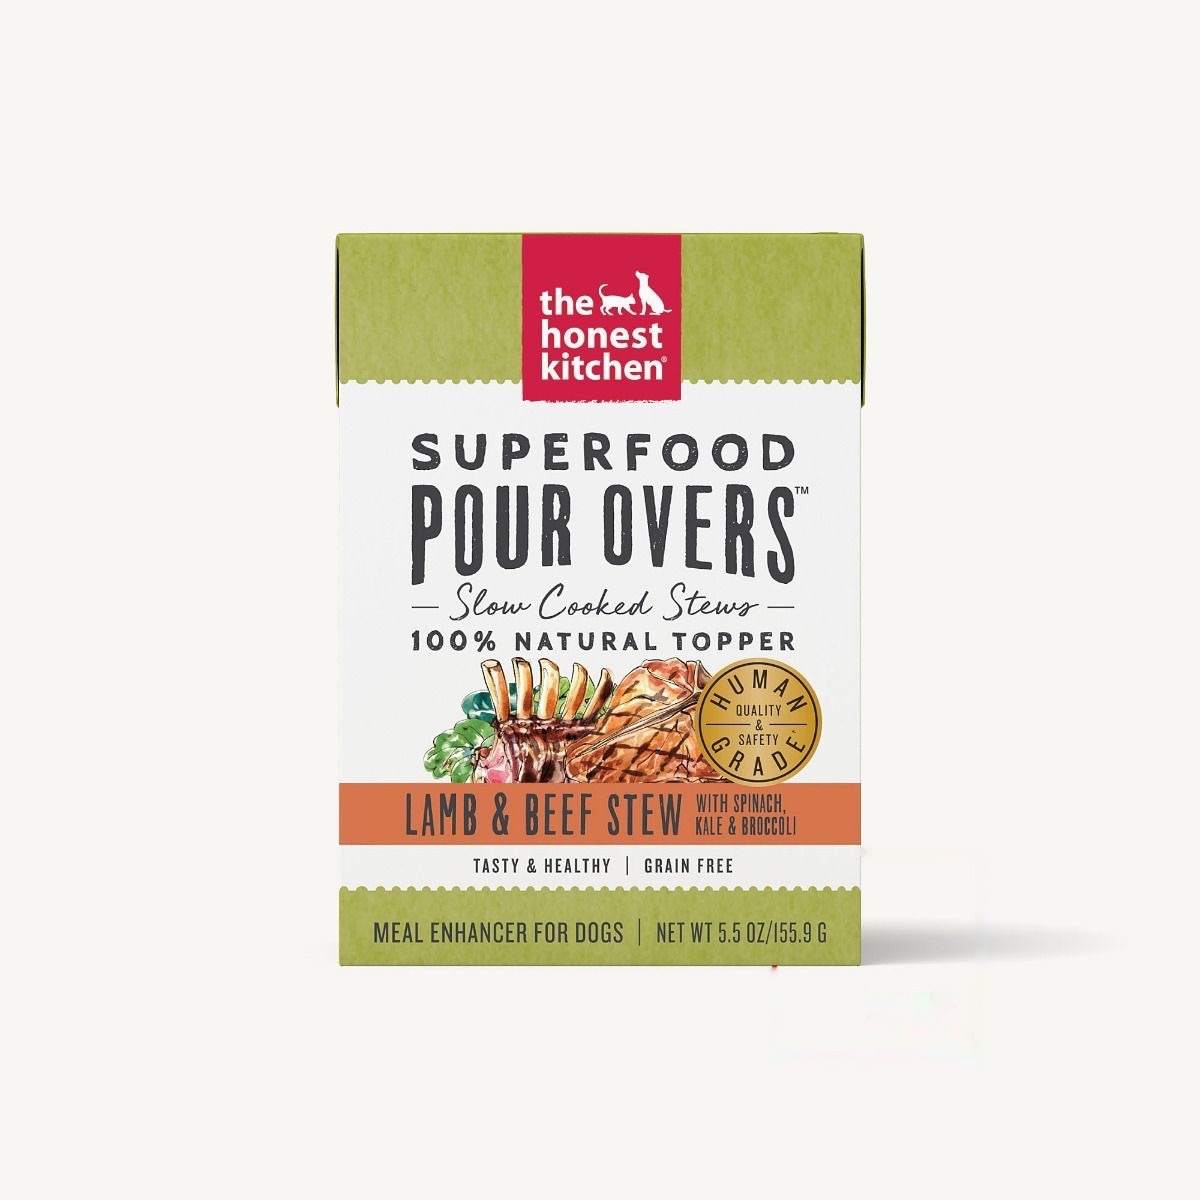 The Honest Kitchen Honest Kitchen Superfood Pour Overs  Lamb & Beef Stew With Spinach, Kale & Broccoli 5.5oz Carton